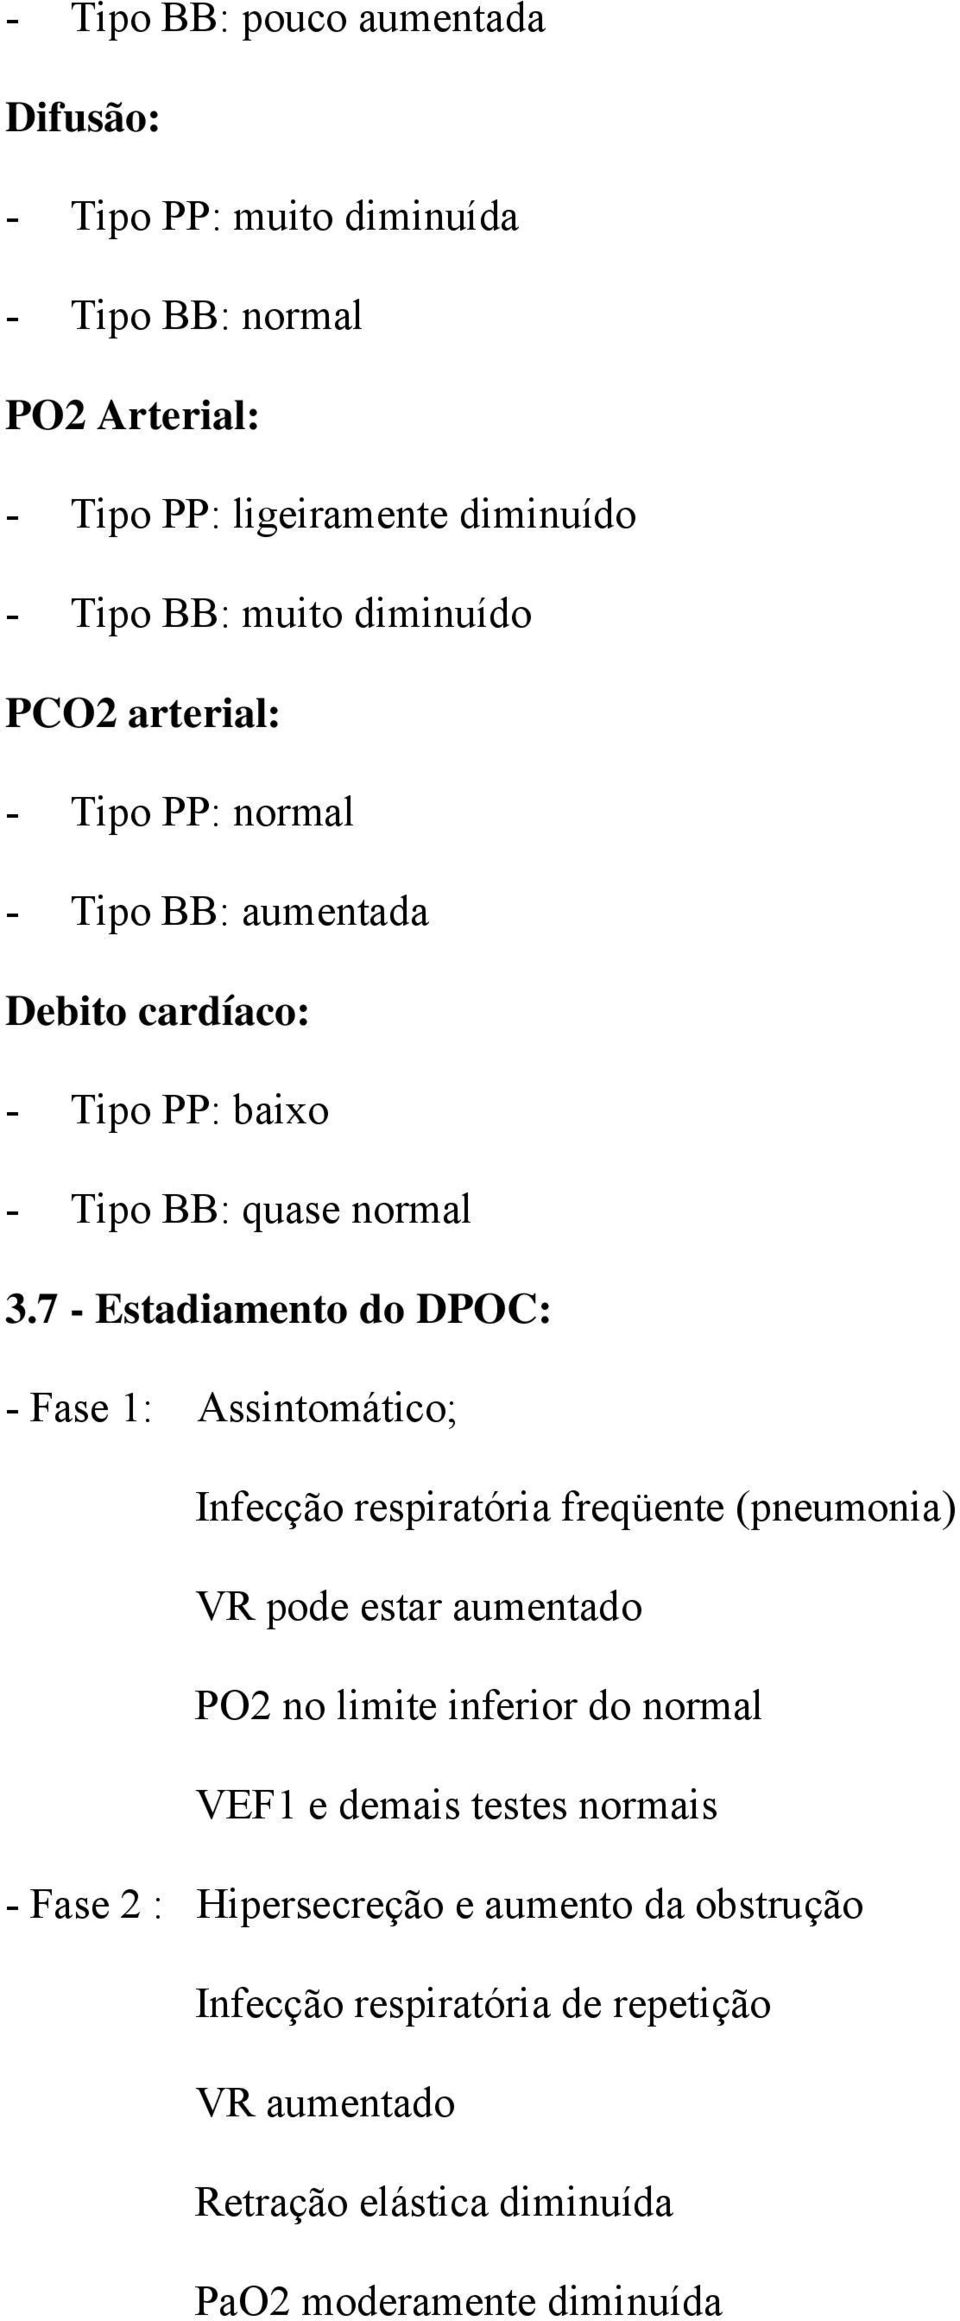 7 - Estadiamento do DPOC: - Fase 1: Assintomático; Infecção respiratória freqüente (pneumonia) VR pode estar aumentado PO2 no limite inferior do